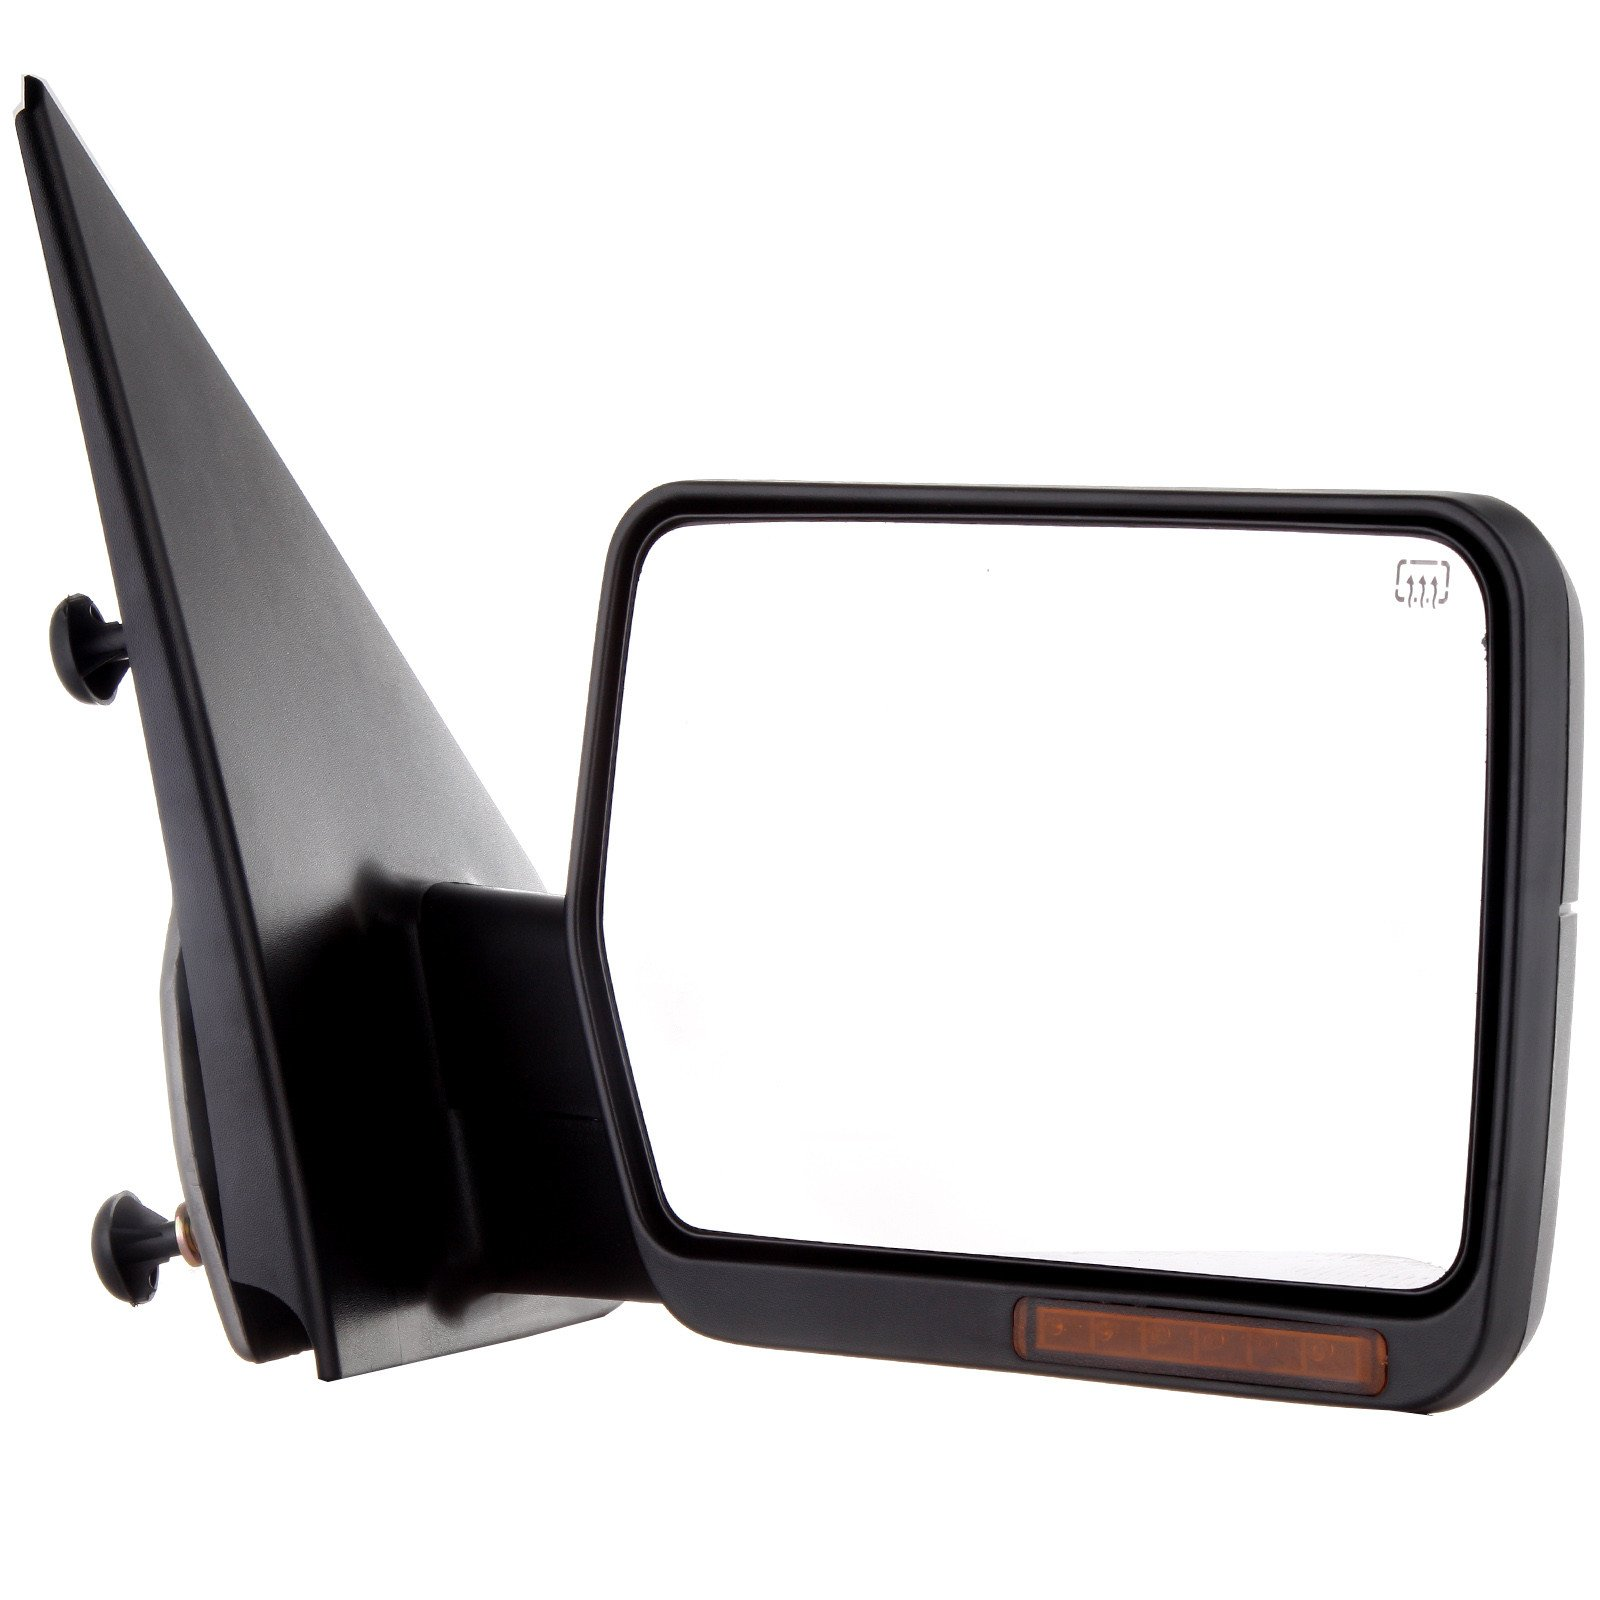 Towing Mirror For 2004-06 Ford F-150 Rear View Mirror Automotive Exterior Mirrors with Power Heated Front LED Signals (Passenger Side) by SCITOO (Image #3)